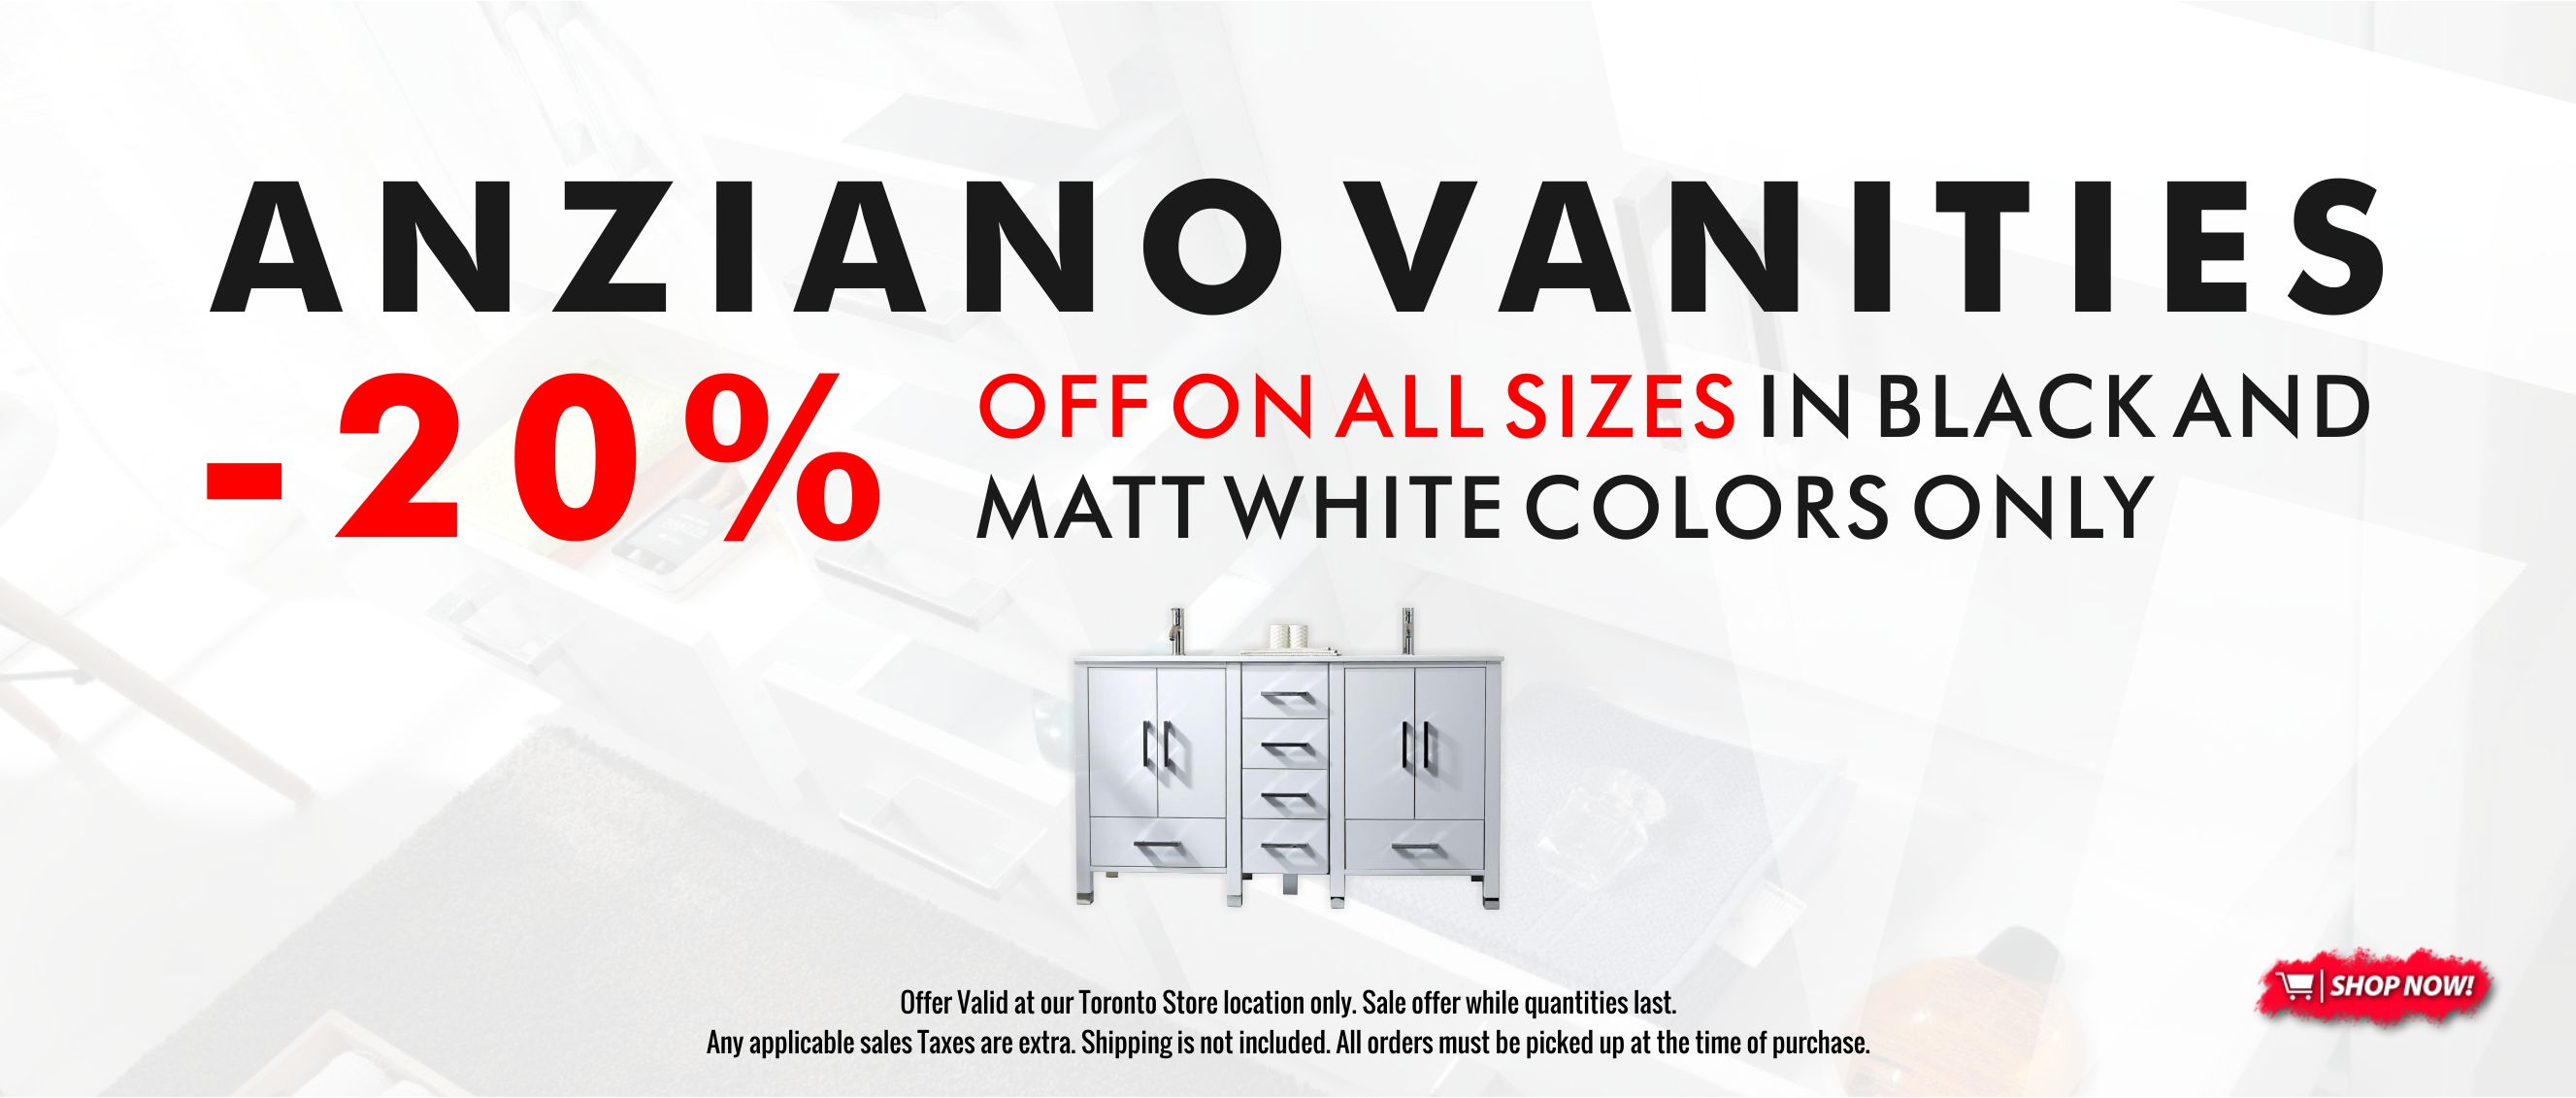 Warehouse Clearance On All Matt White And Matt Black Anziano Vanities And Mirrors Are Currently On Sale 20 Off